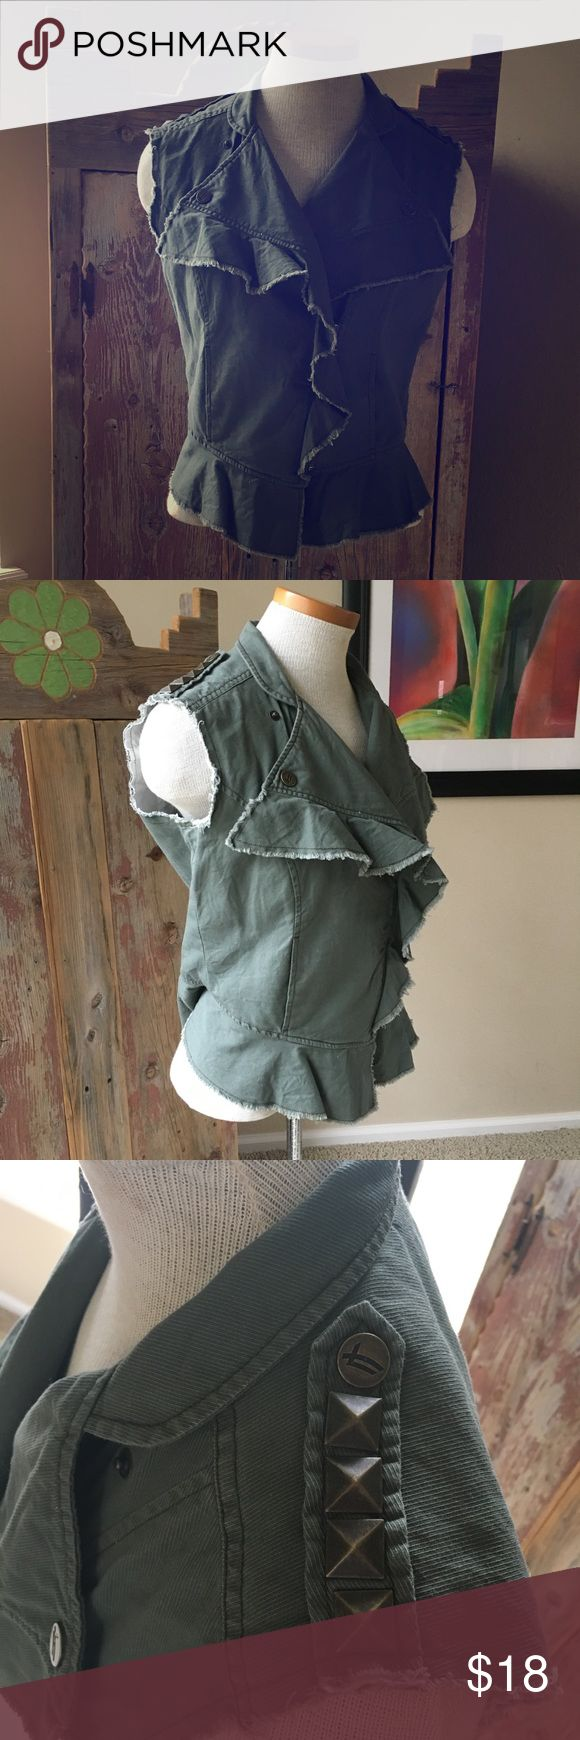 William Rast Military vest olive green Sz S William Rast Military vest olive green Sz S.  Studded on shoulders.  Lining has come unstitched in one spot.  See photos for details. William Rast Jackets & Coats Vests